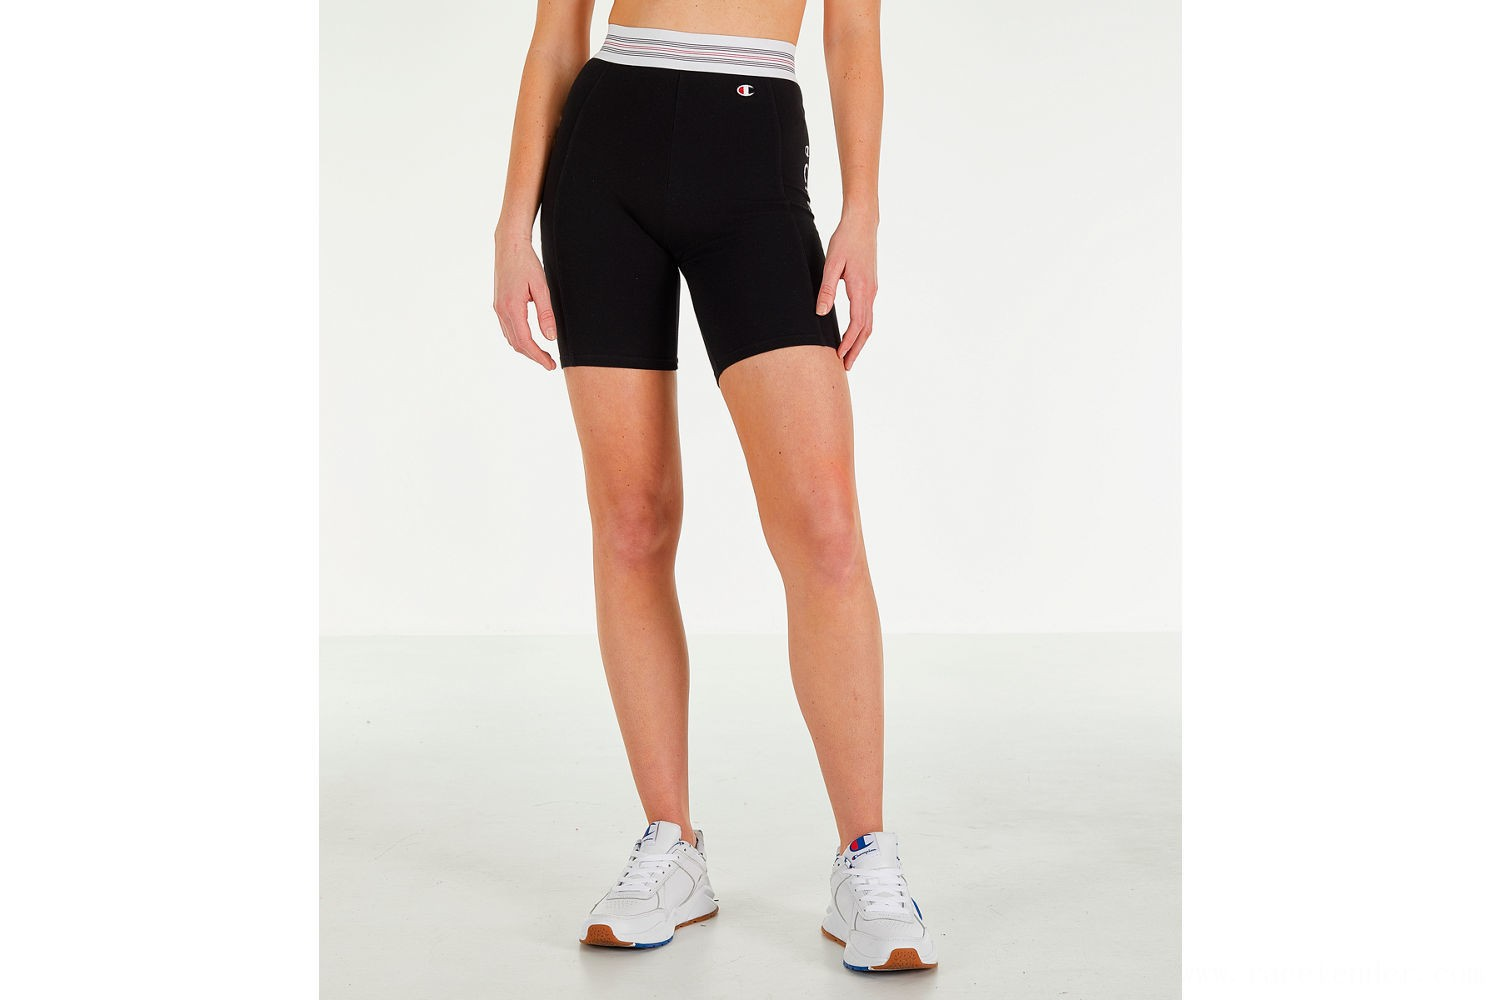 Champion Women's Power Cotton Bike Shorts - Black